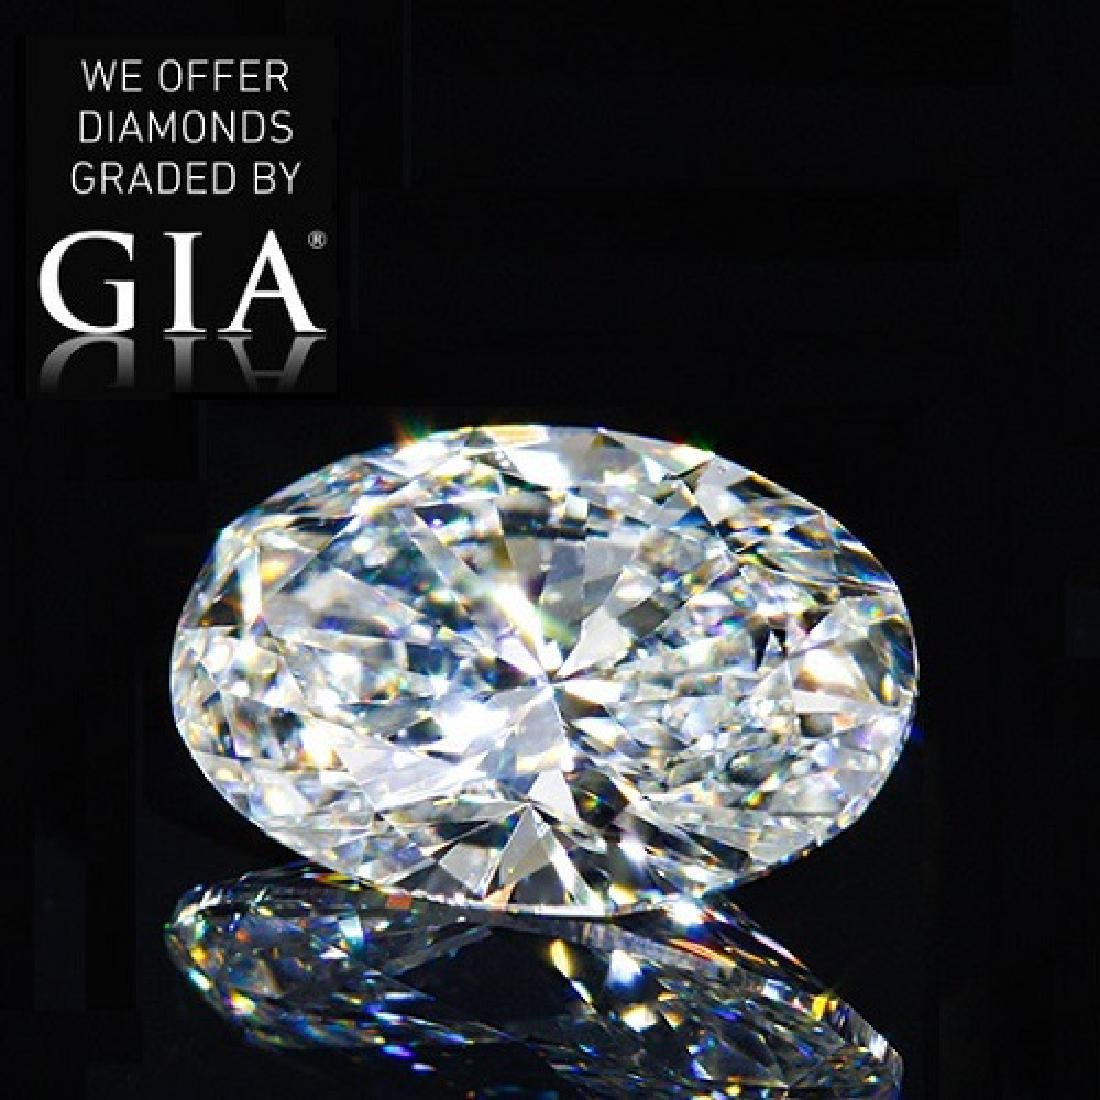 4.01 ct, Color D/VS1, Oval cut Diamond